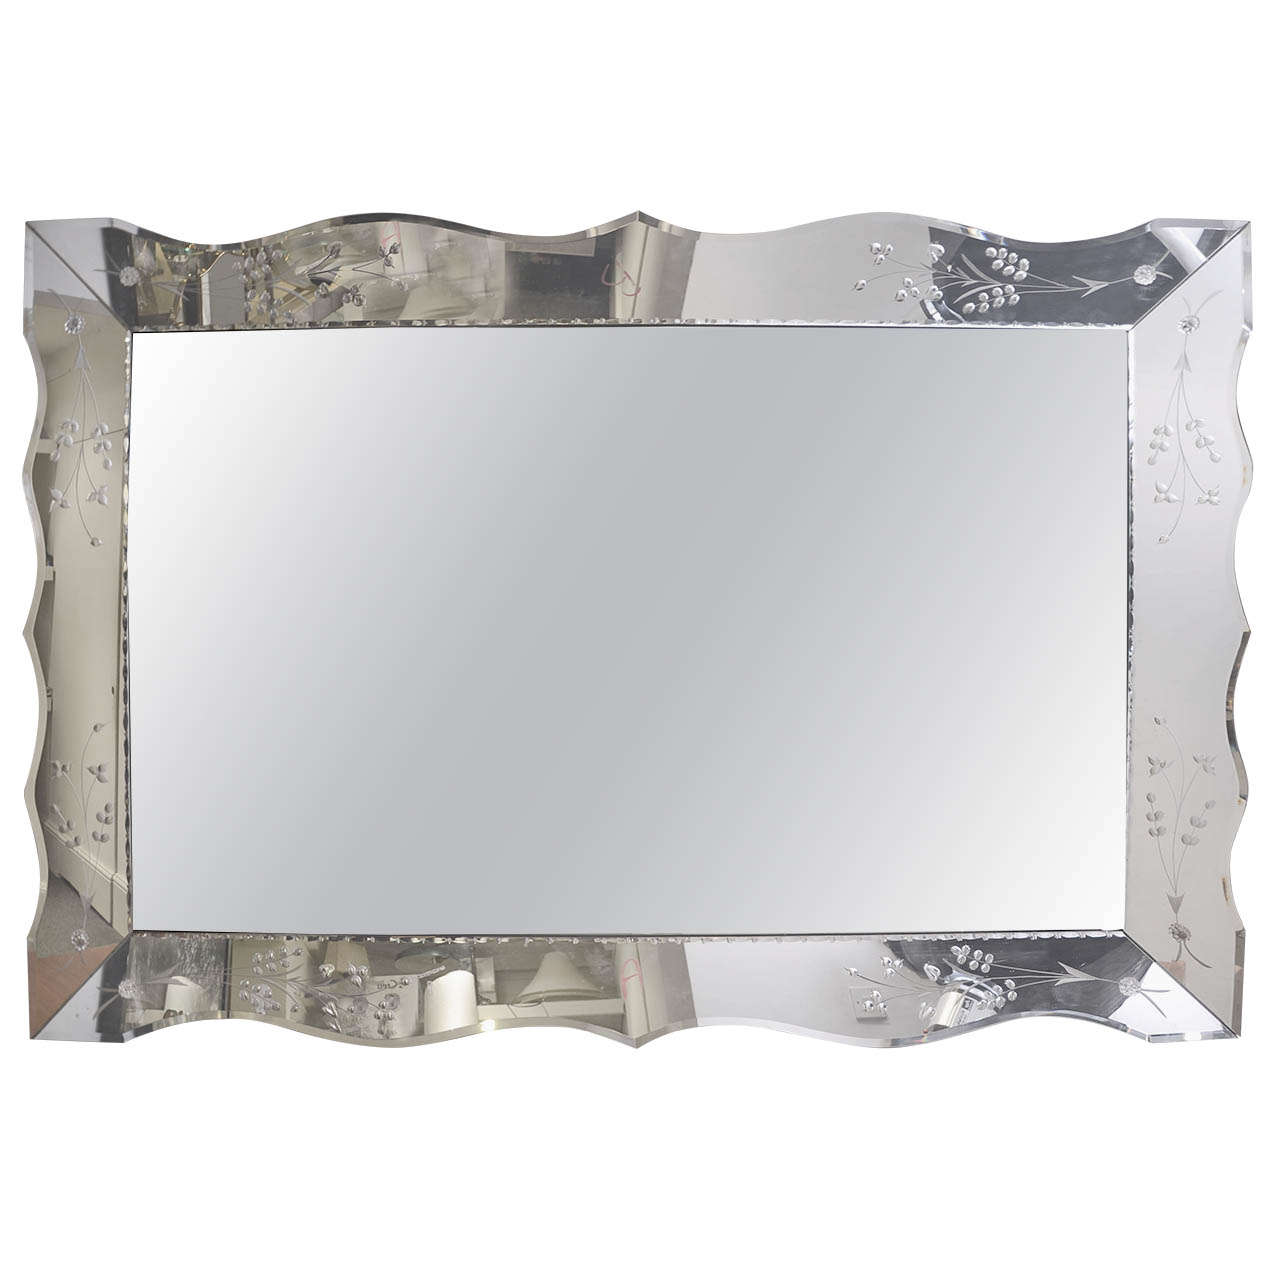 1950s American Large Rectangular Etched Mirror For